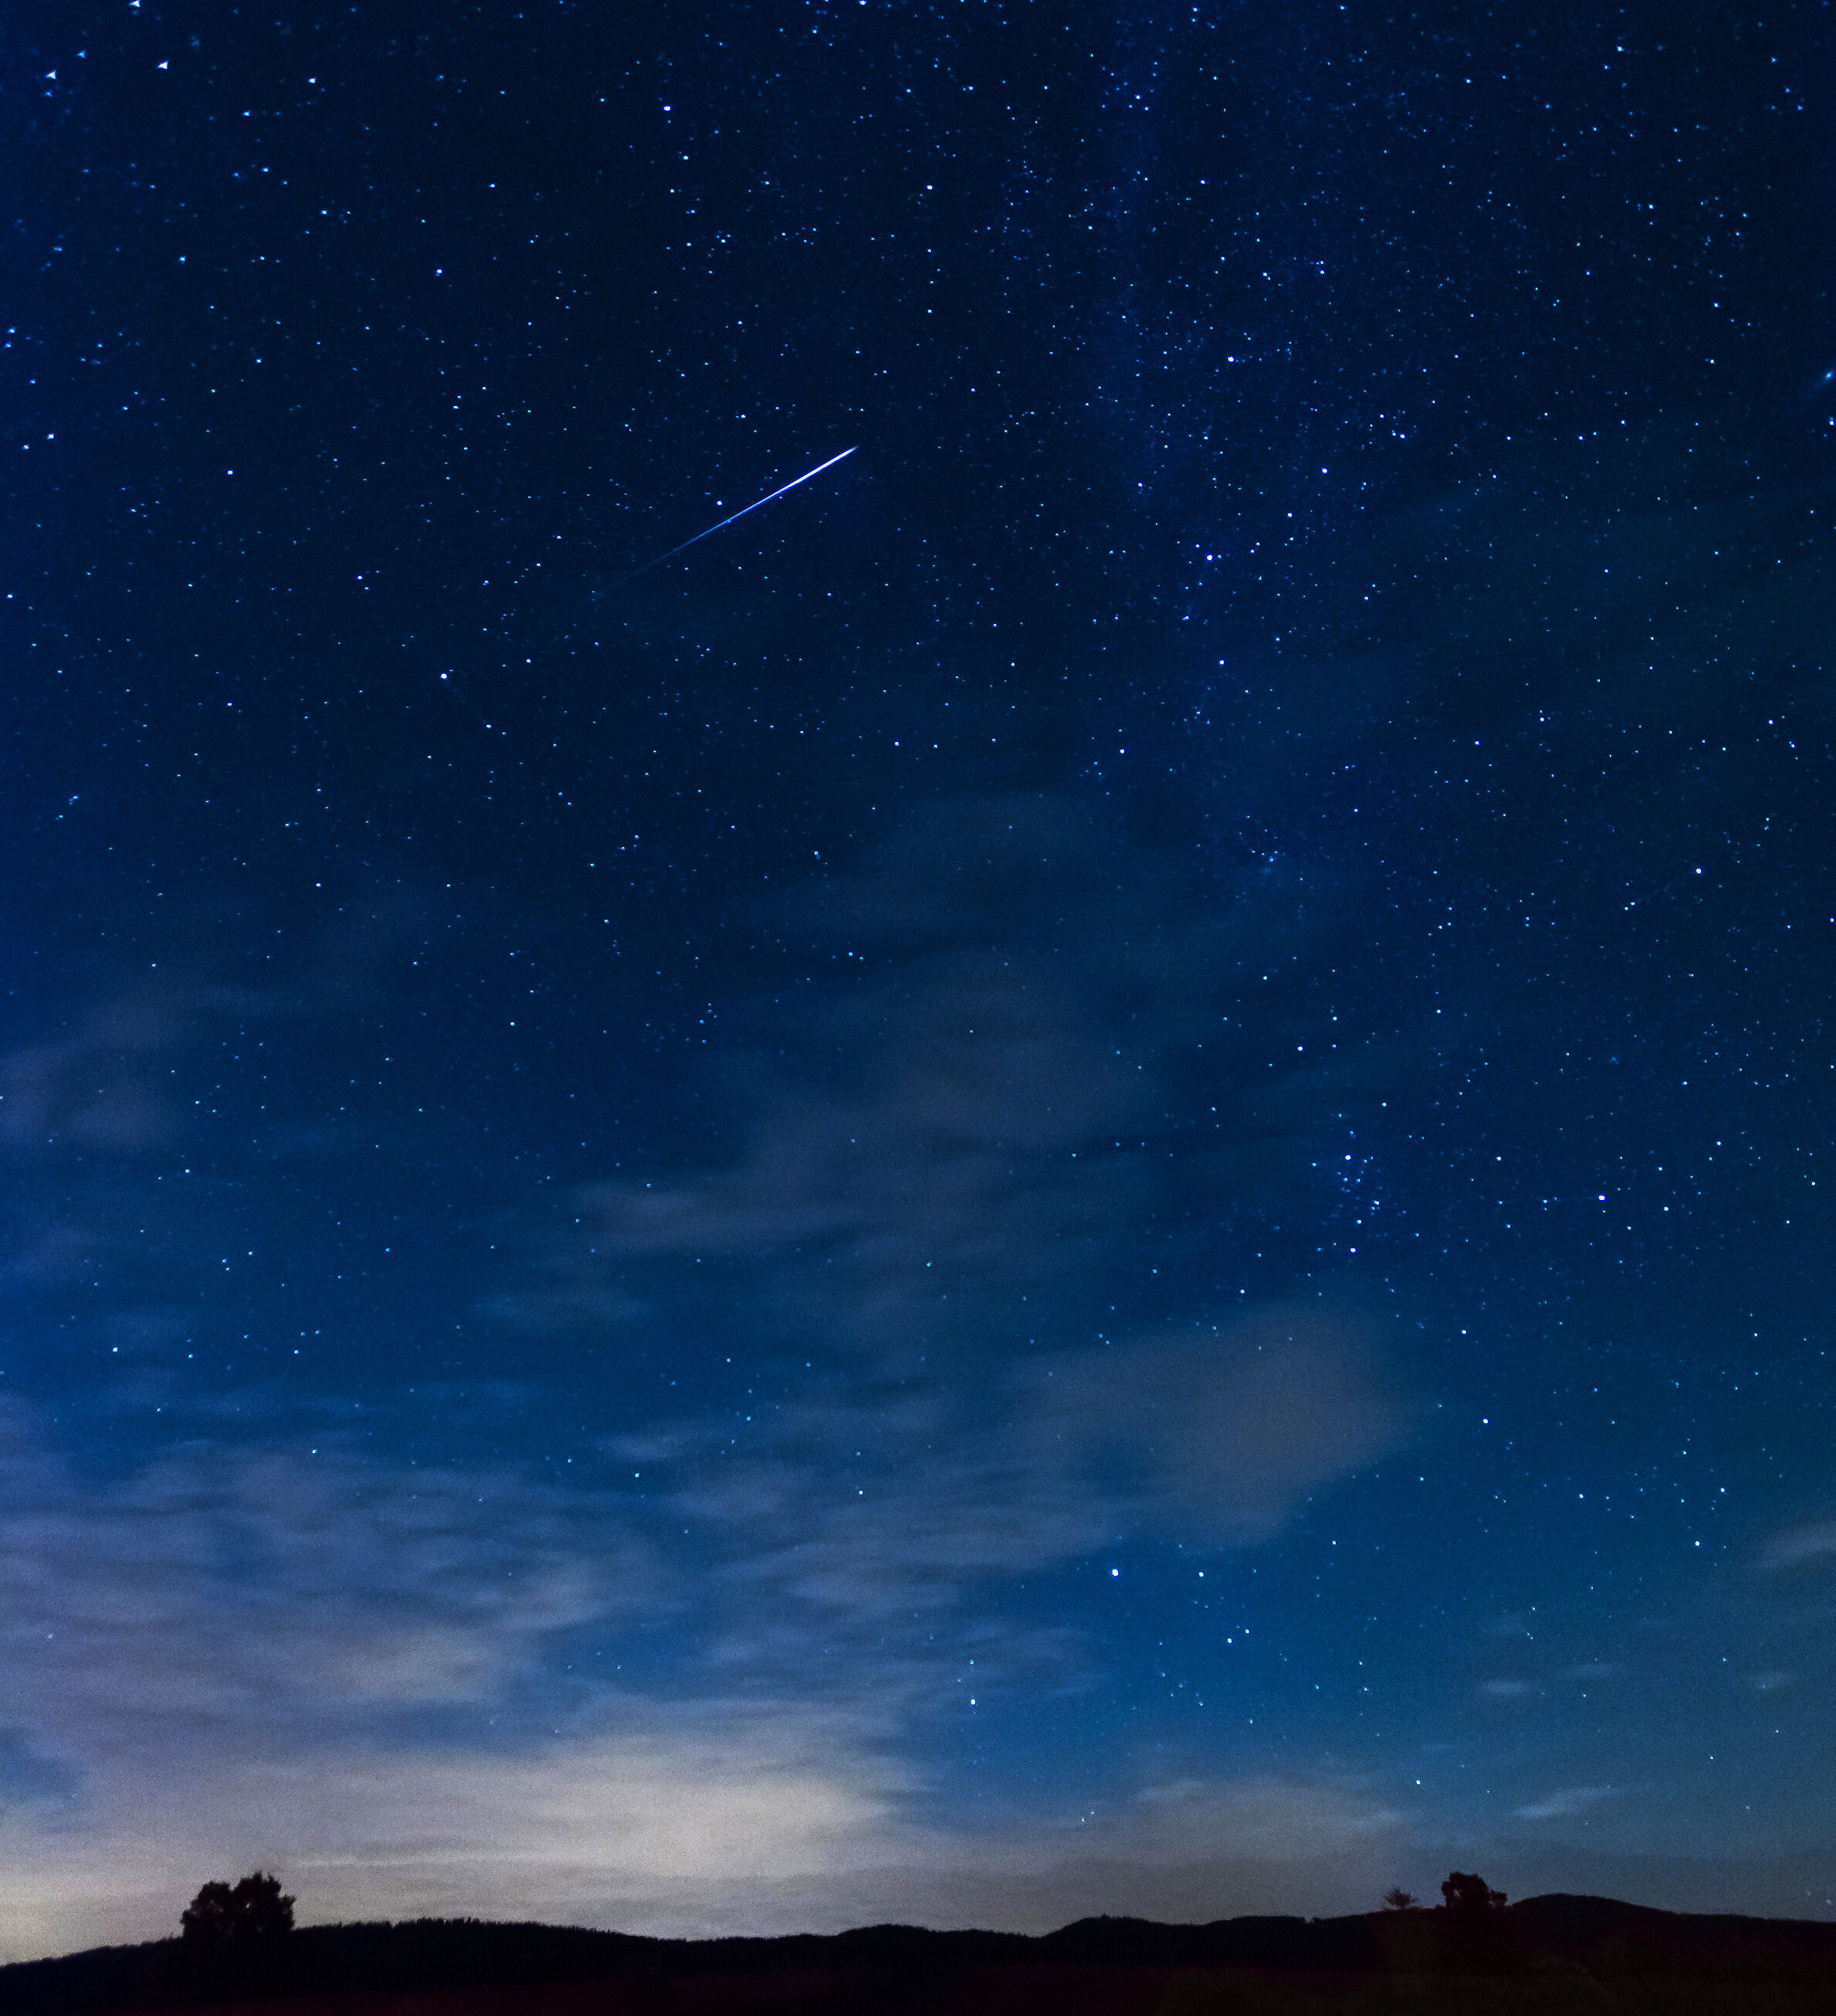 What happens when a meteor hits the atmosphere?